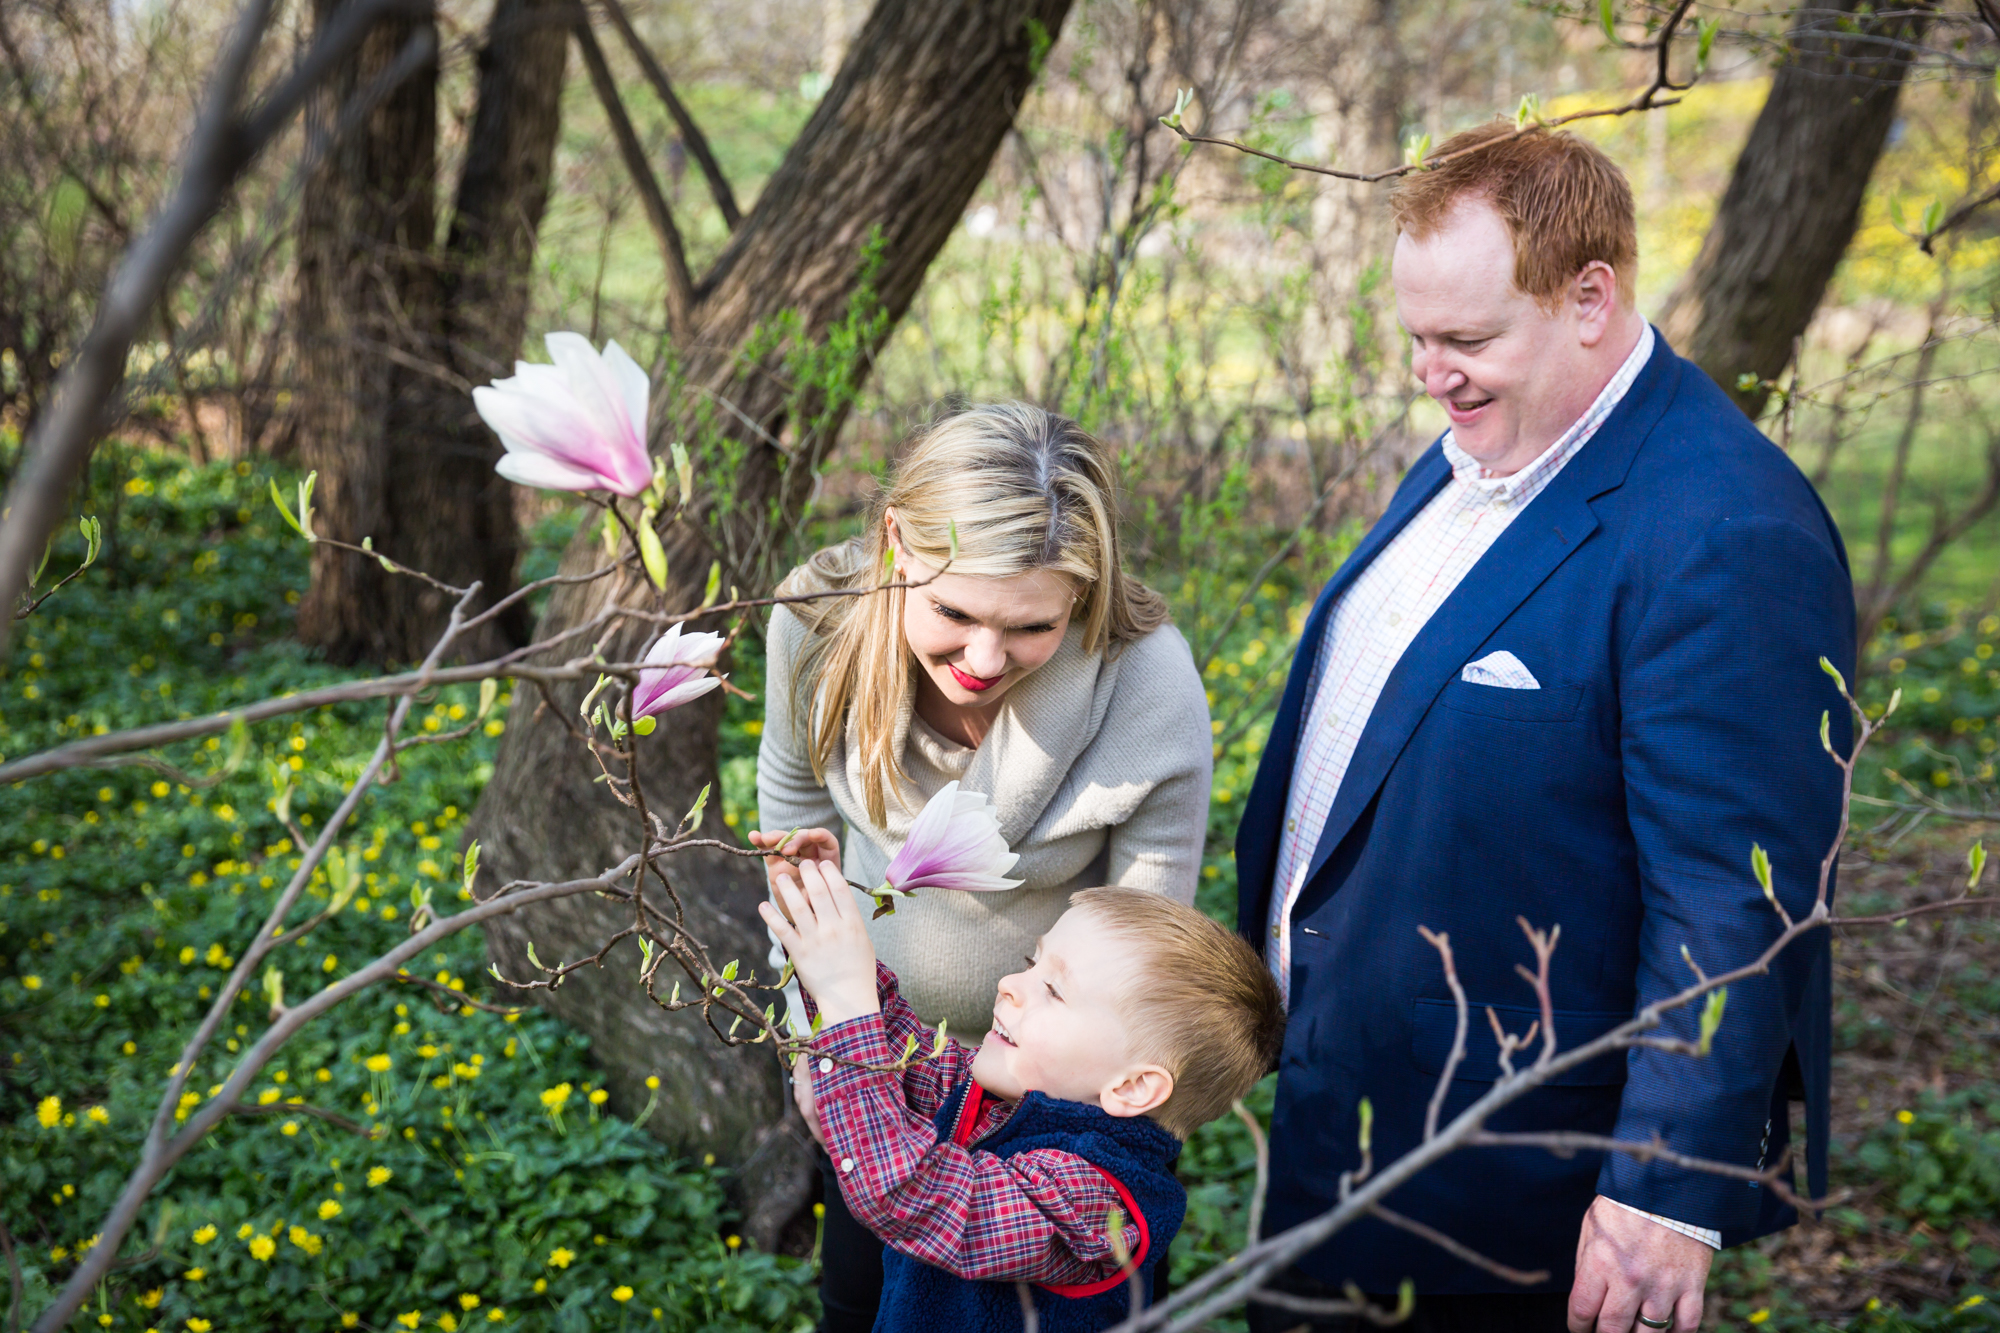 Parents and child smelling flower for an article on the best family portrait poses